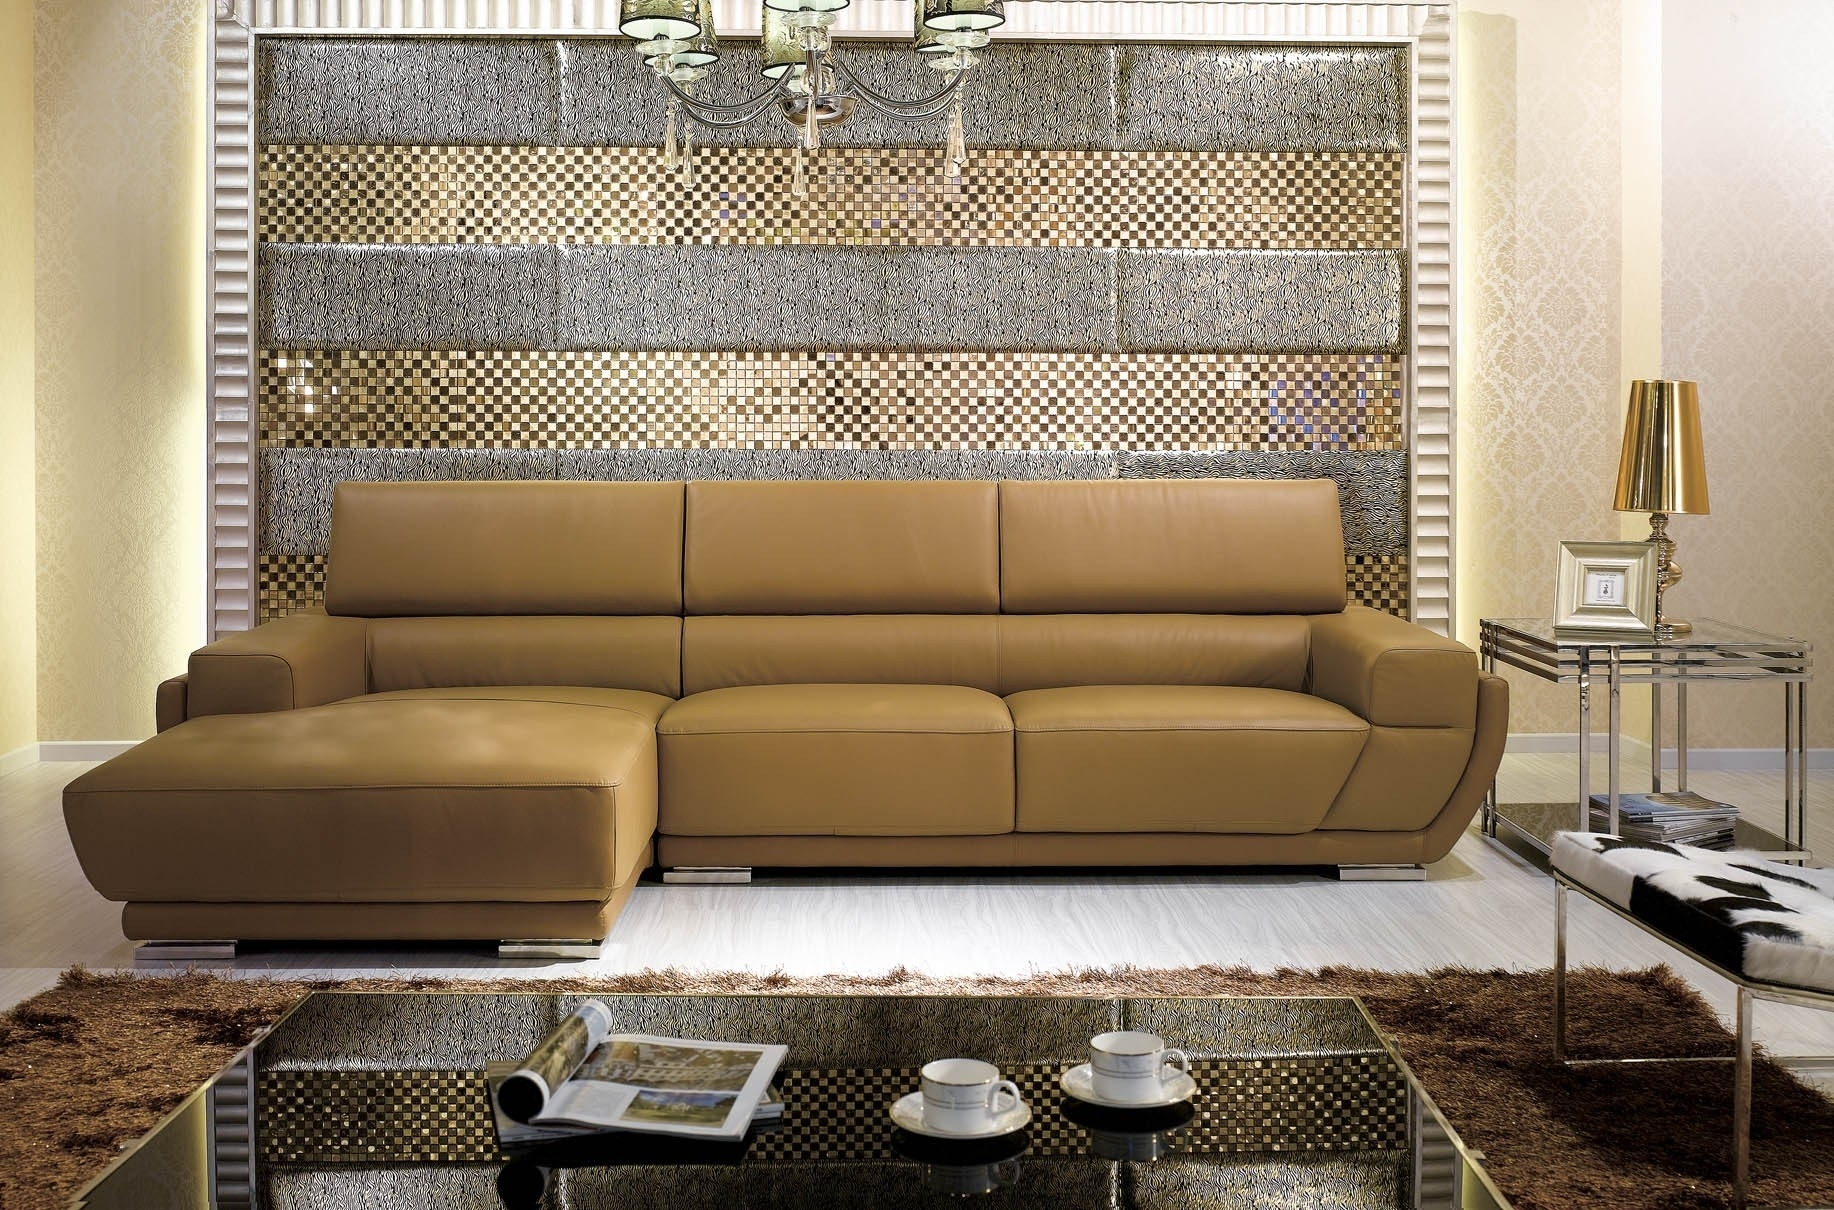 Astounding Camel Colored Sectional Sofa 94 For Sectional Sofa Pertaining To Camel Colored Sectional Sofas (View 3 of 10)